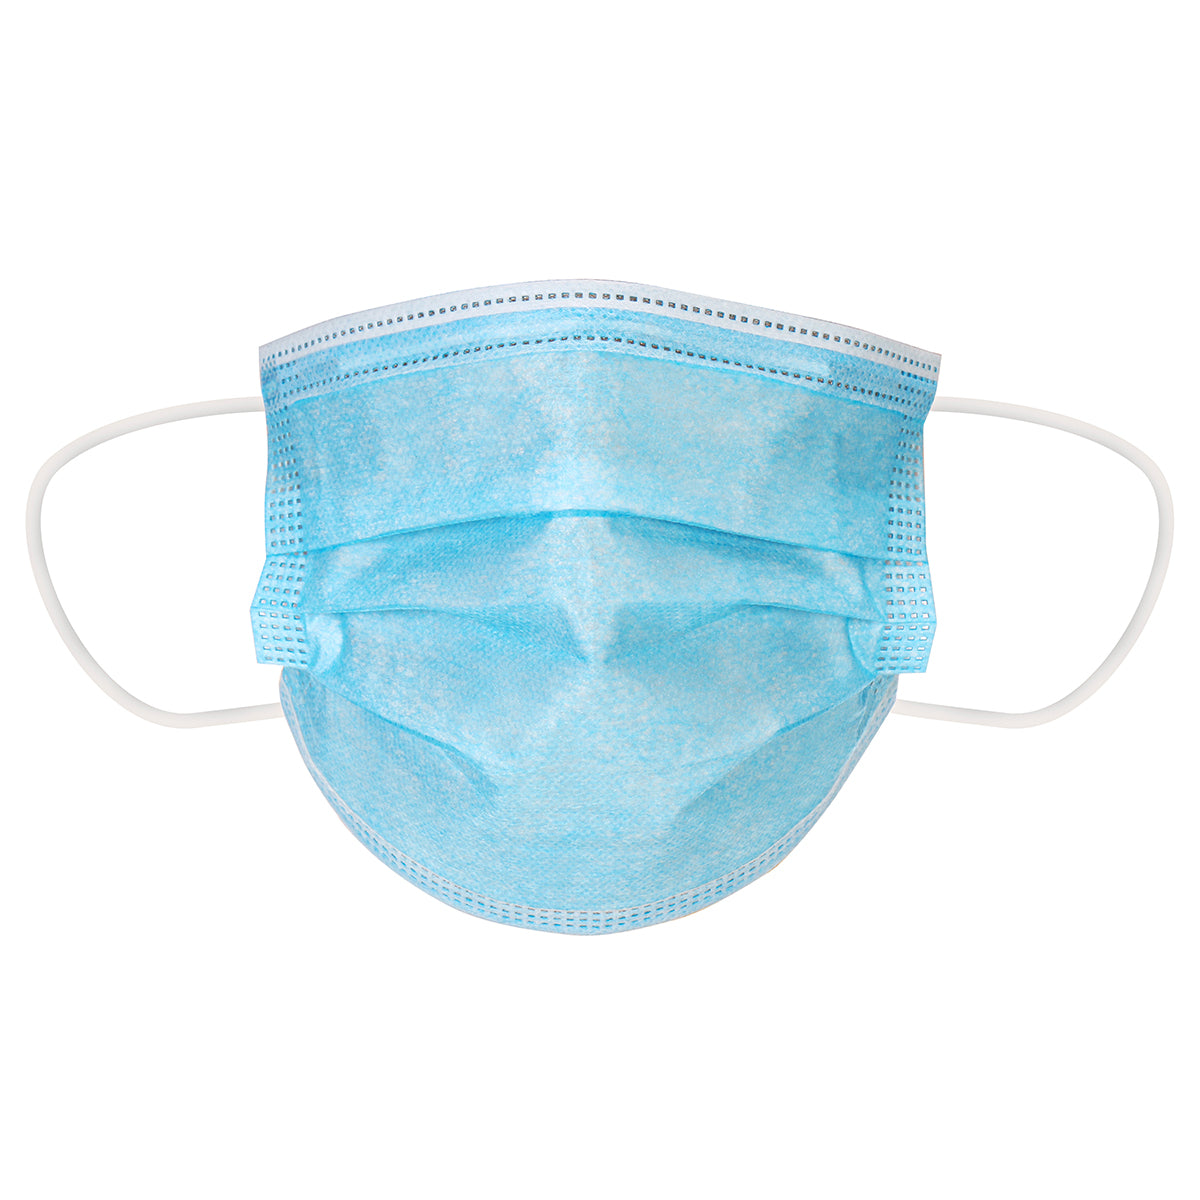 20Pcs Disposable Masks Mouth Face Mask 3-layer Dust-Proof Personal Protection